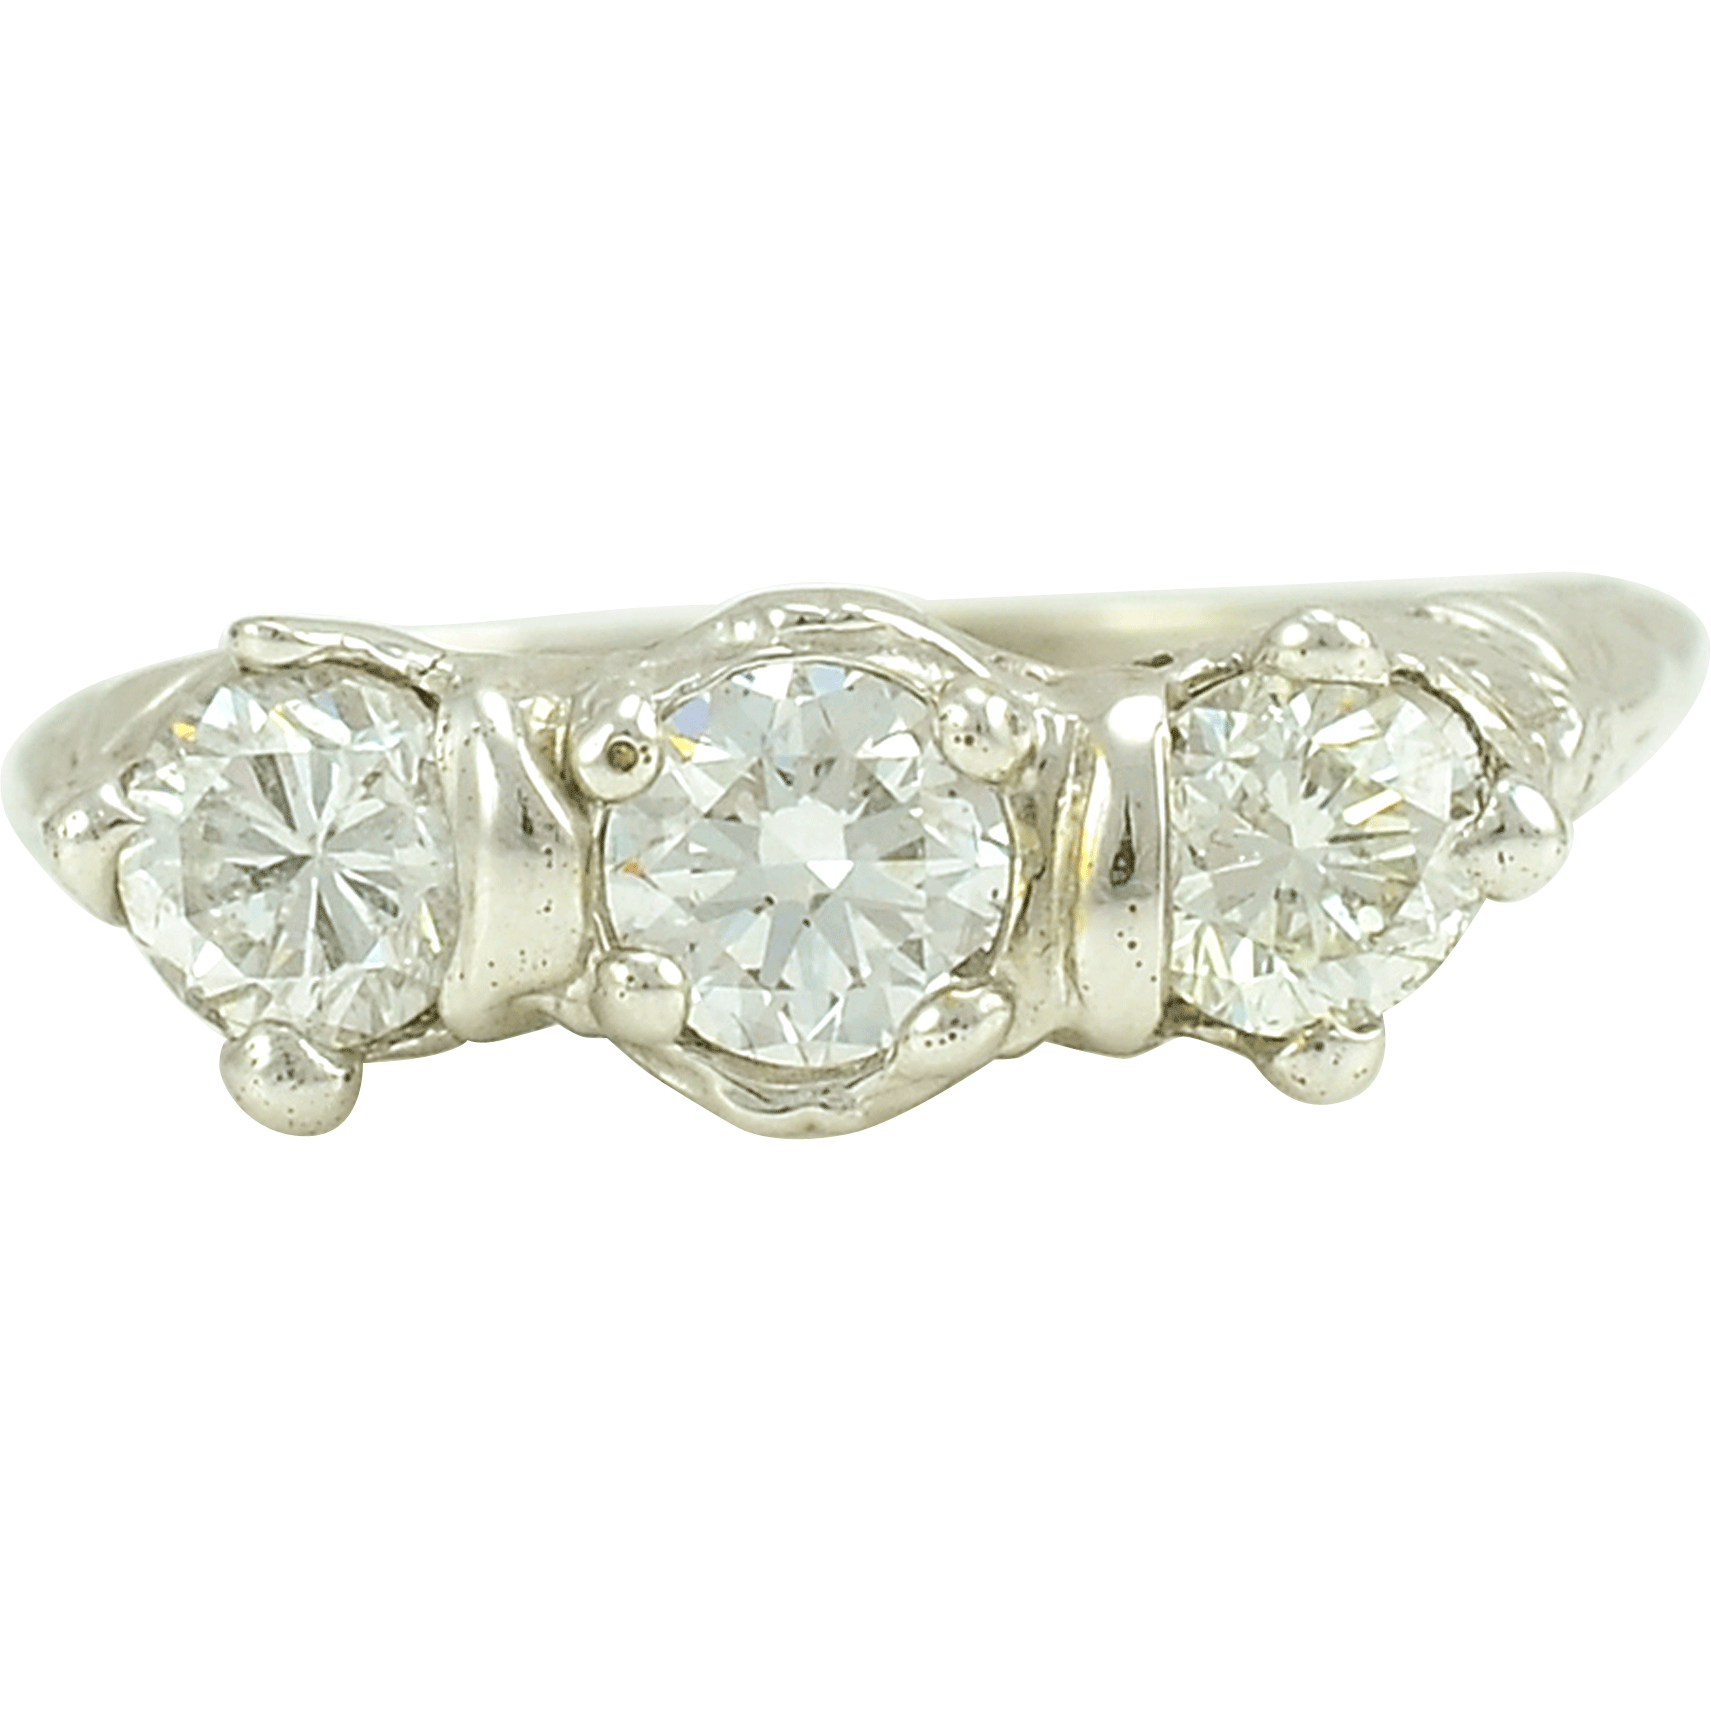 18 Karat White Gold Art Deco Three Diamond Ring